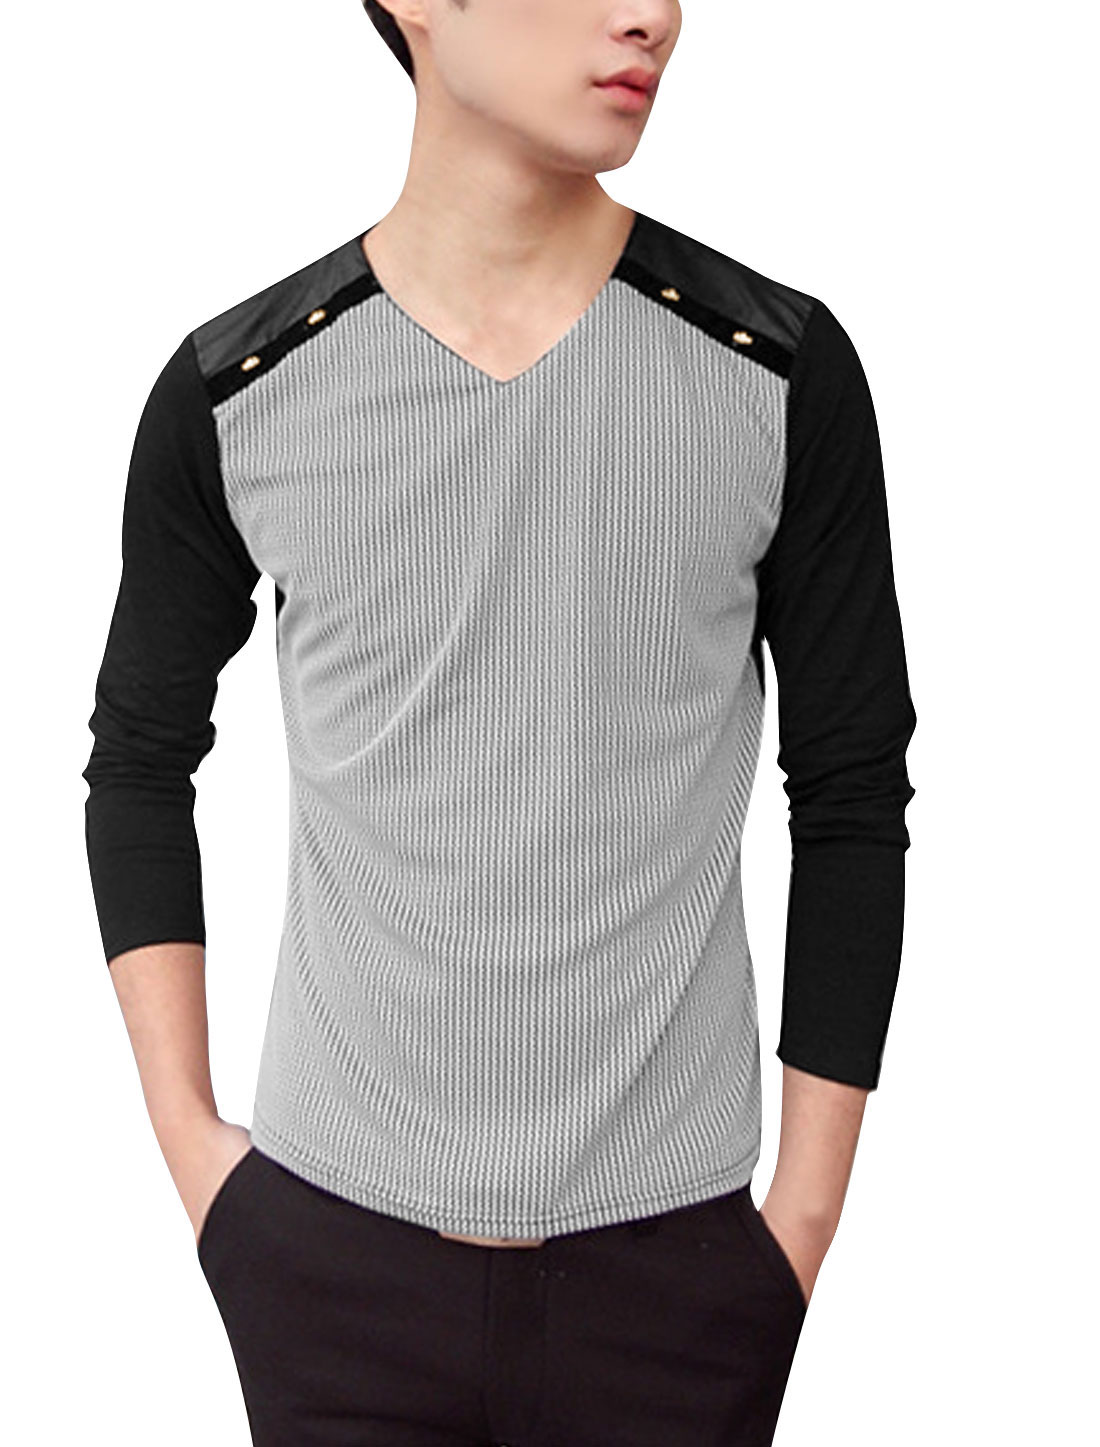 Men Contrast Long Sleeves Patched Detail Stripes Leisure Shirt Black S